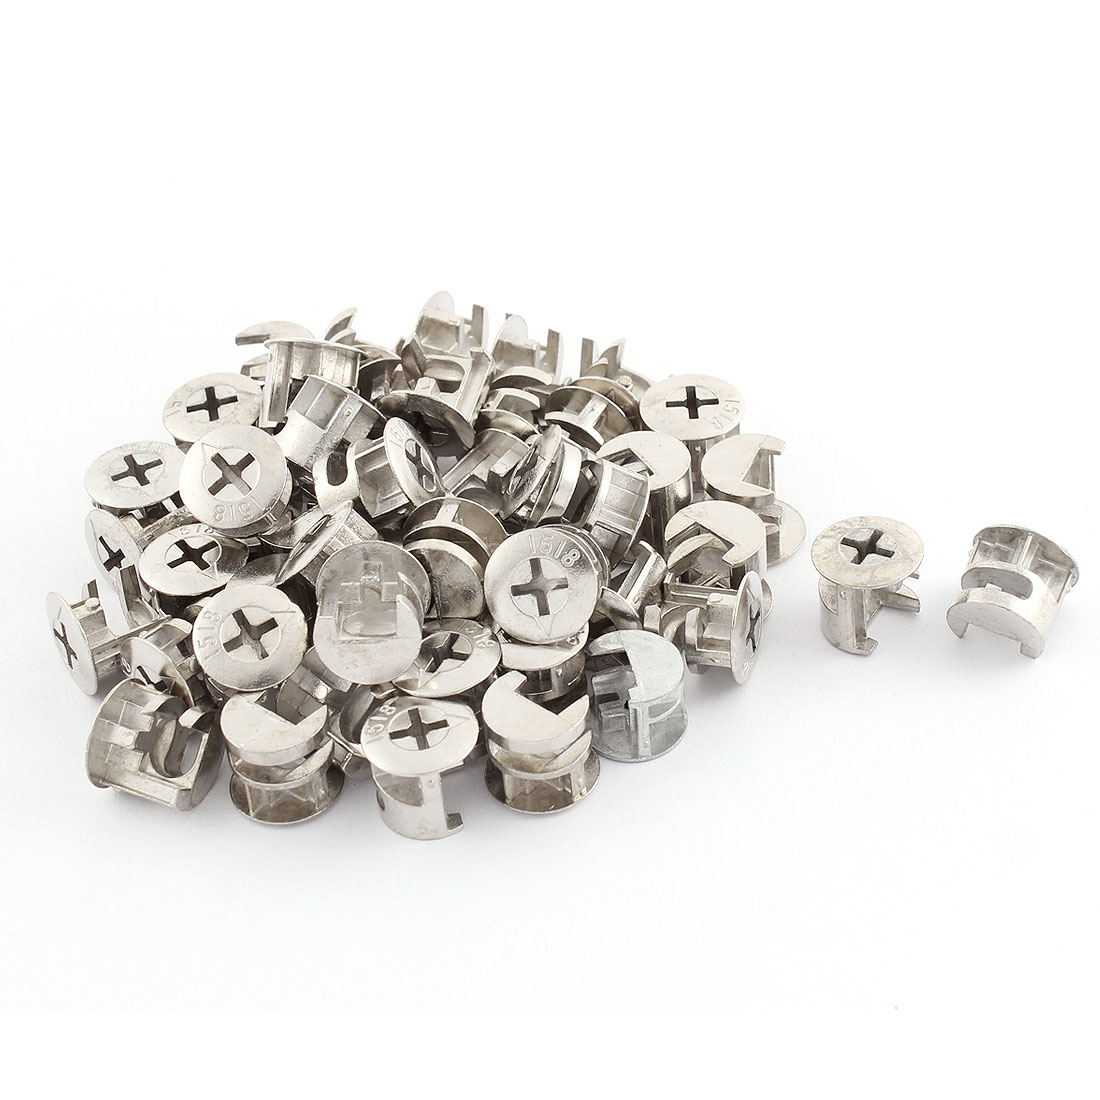 15.5mm Dia Cross Head Metal Cabinet Furniture Connector Cam Fittings Silver Tone 50 Pcs